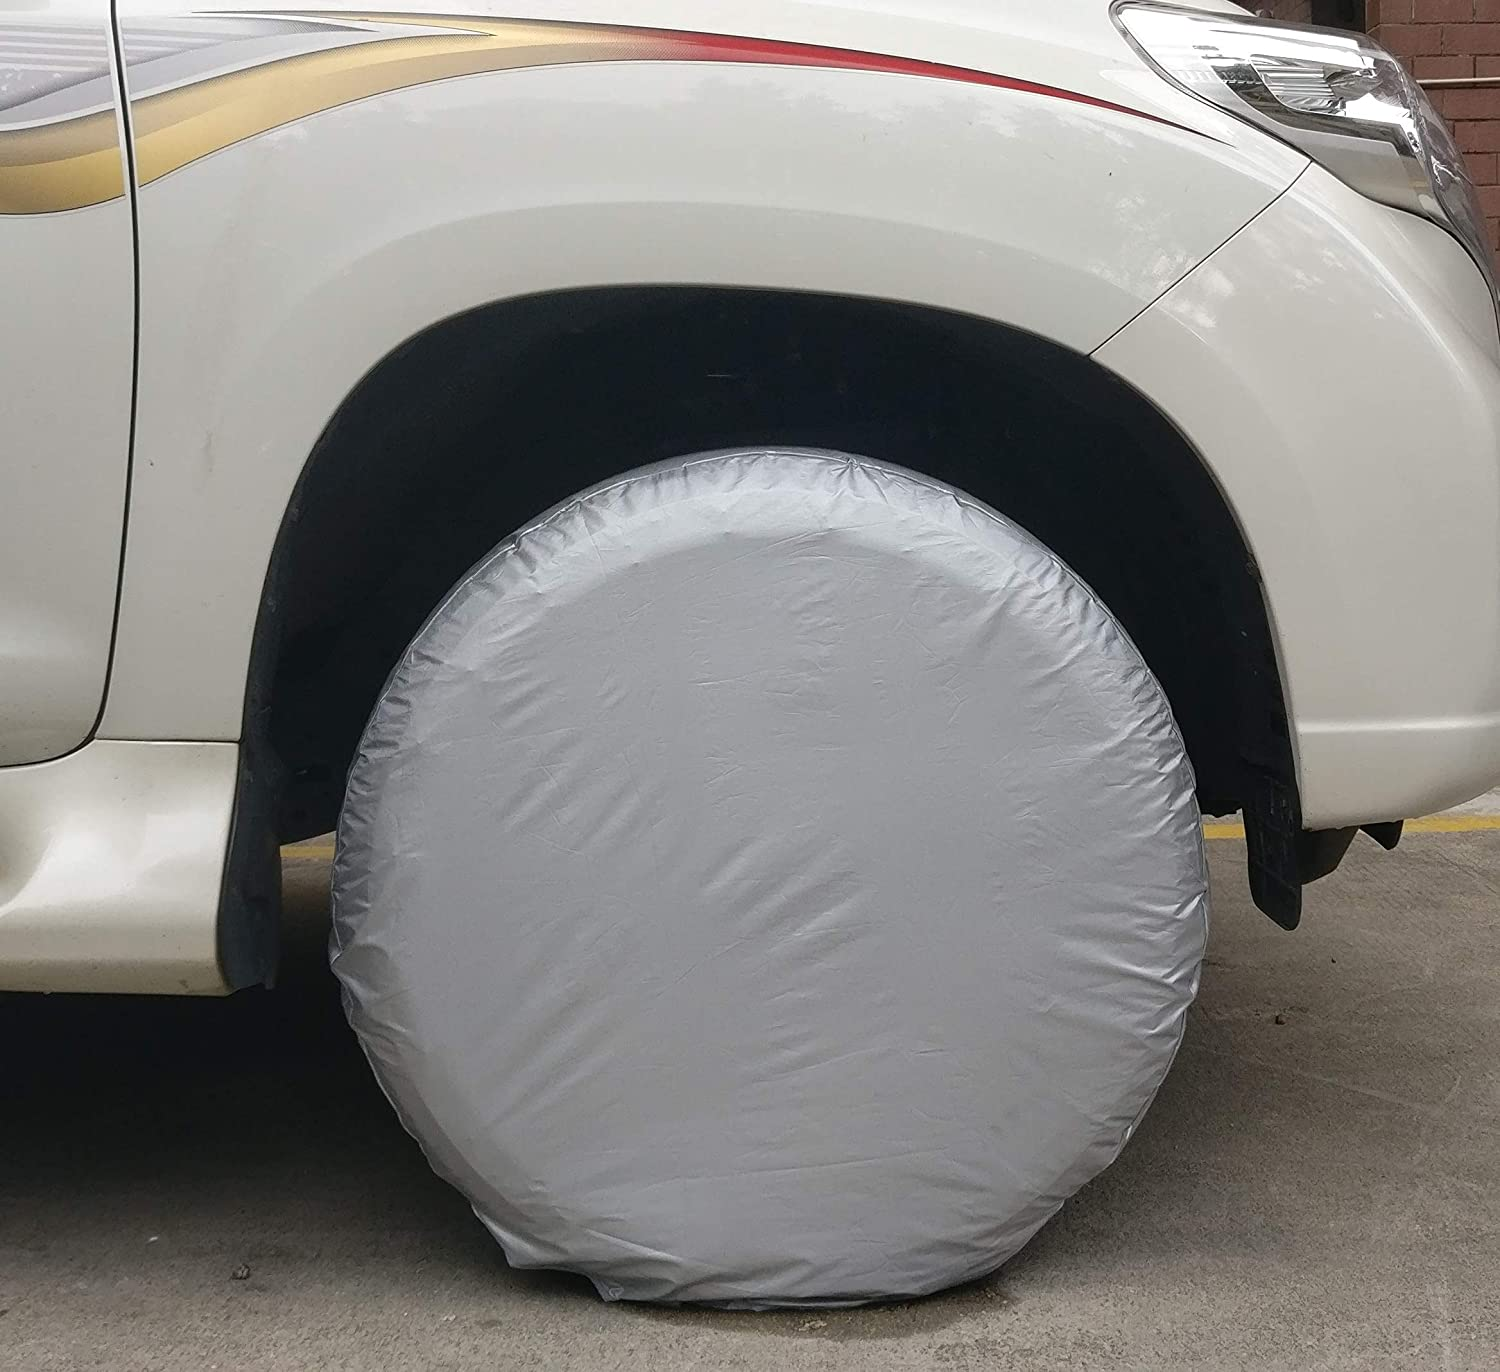 Bingdle Set of 4 Tire Covers for RVS Auto Truck Camper Trailer Waterproof Aluminum Film If Breakage Within 2 Years, Resend New Item Immediately (Camouflage 25-28') Resend New Item Immediately (Camouflage 25-28) bingdle30